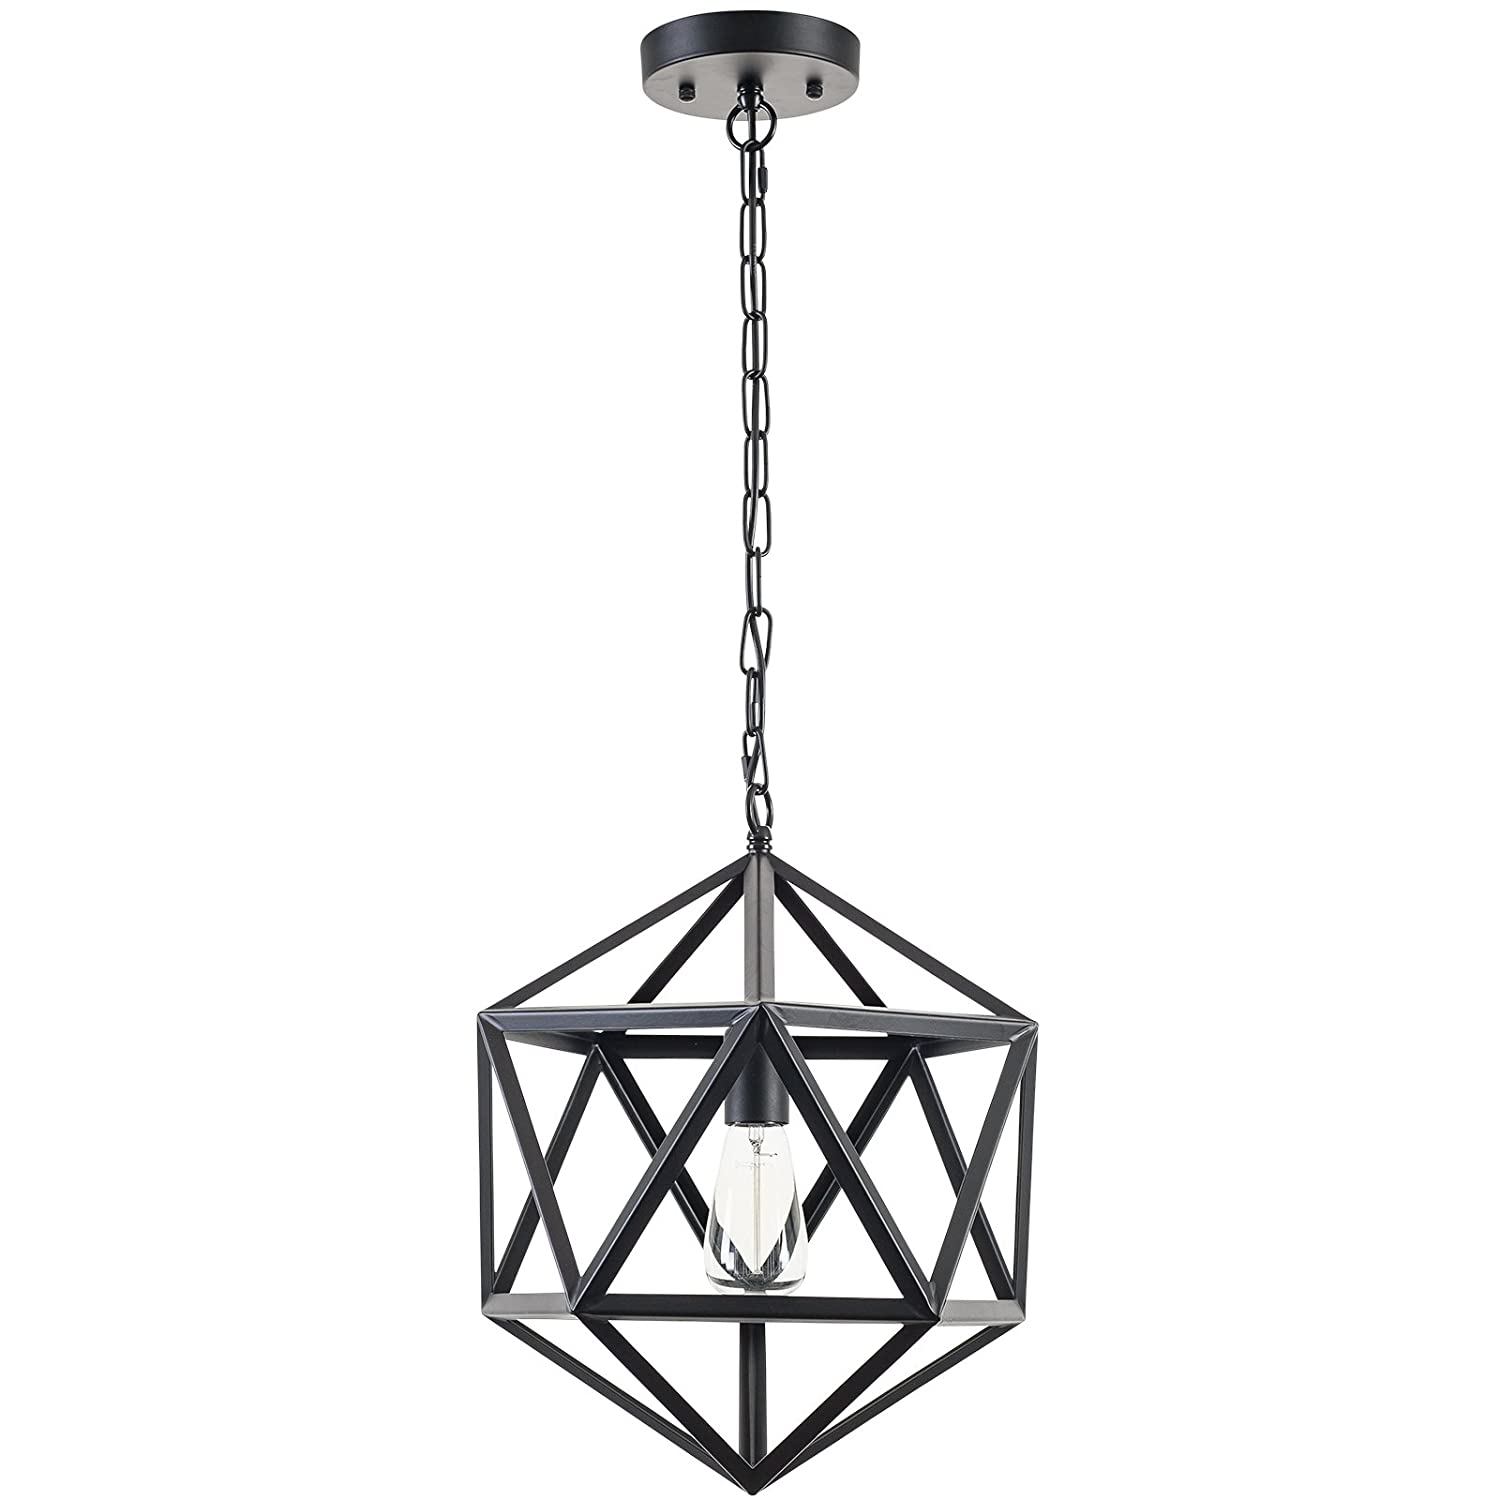 Light Society Geodesic Pendant Light, Matte Black, Geometric Vintage Modern Industrial Lighting Fixture LS-C110